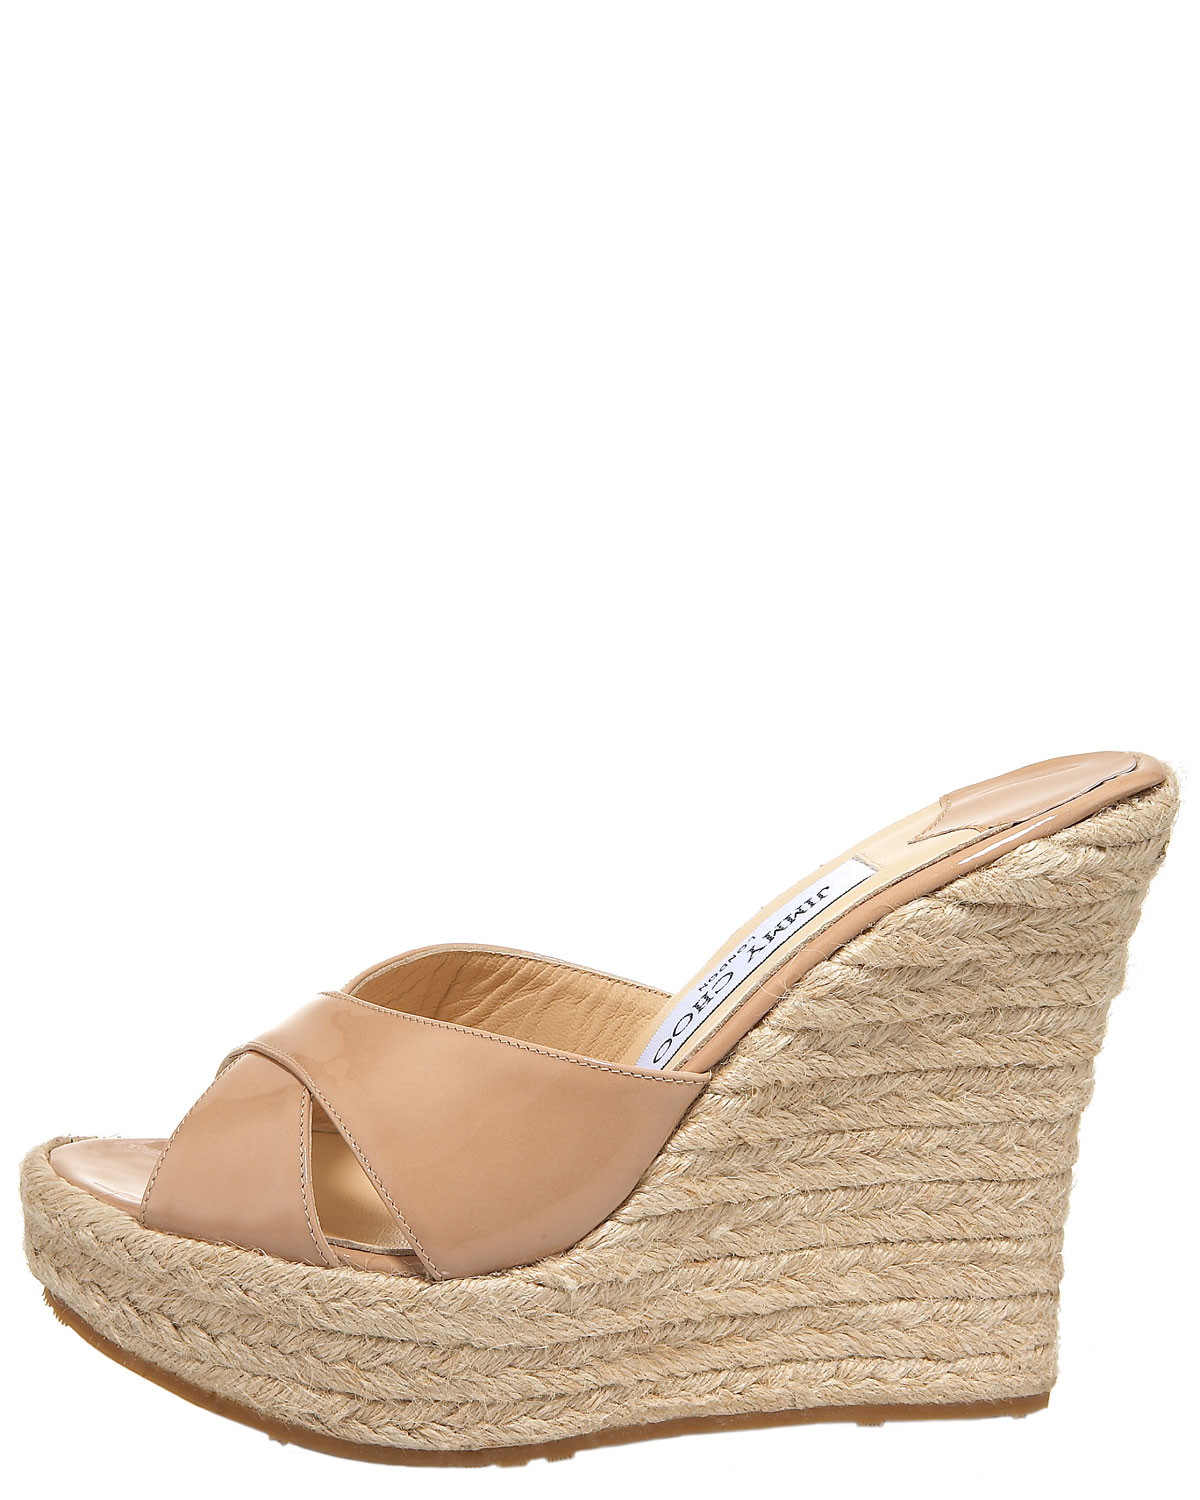 e5cc264381f Lyst - Jimmy Choo Phyllis Patent Leather Wedge Espadrille Slides in ...